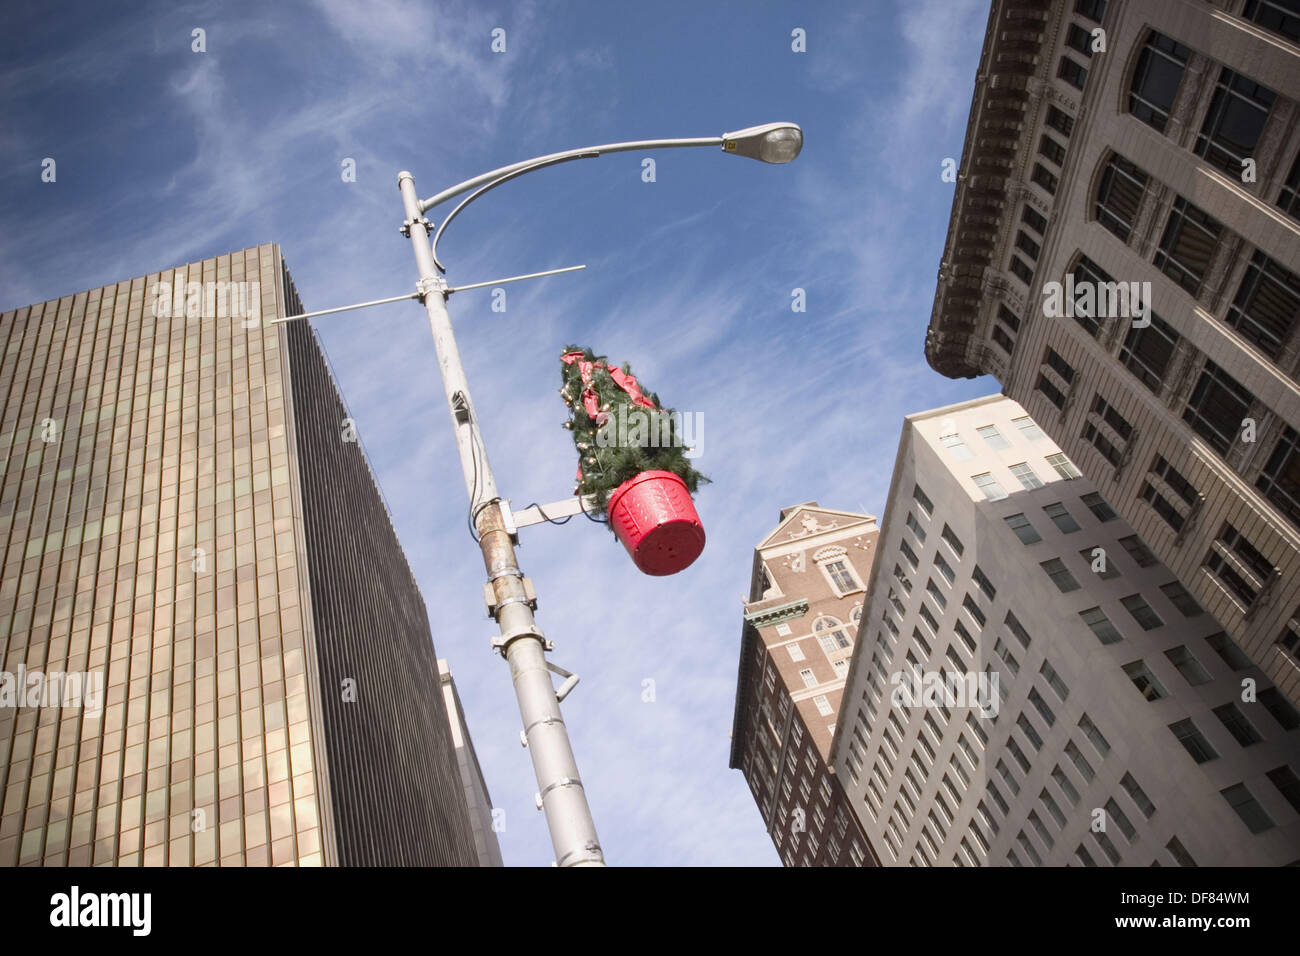 christmas decorations attached to a light pole on a city street stock image